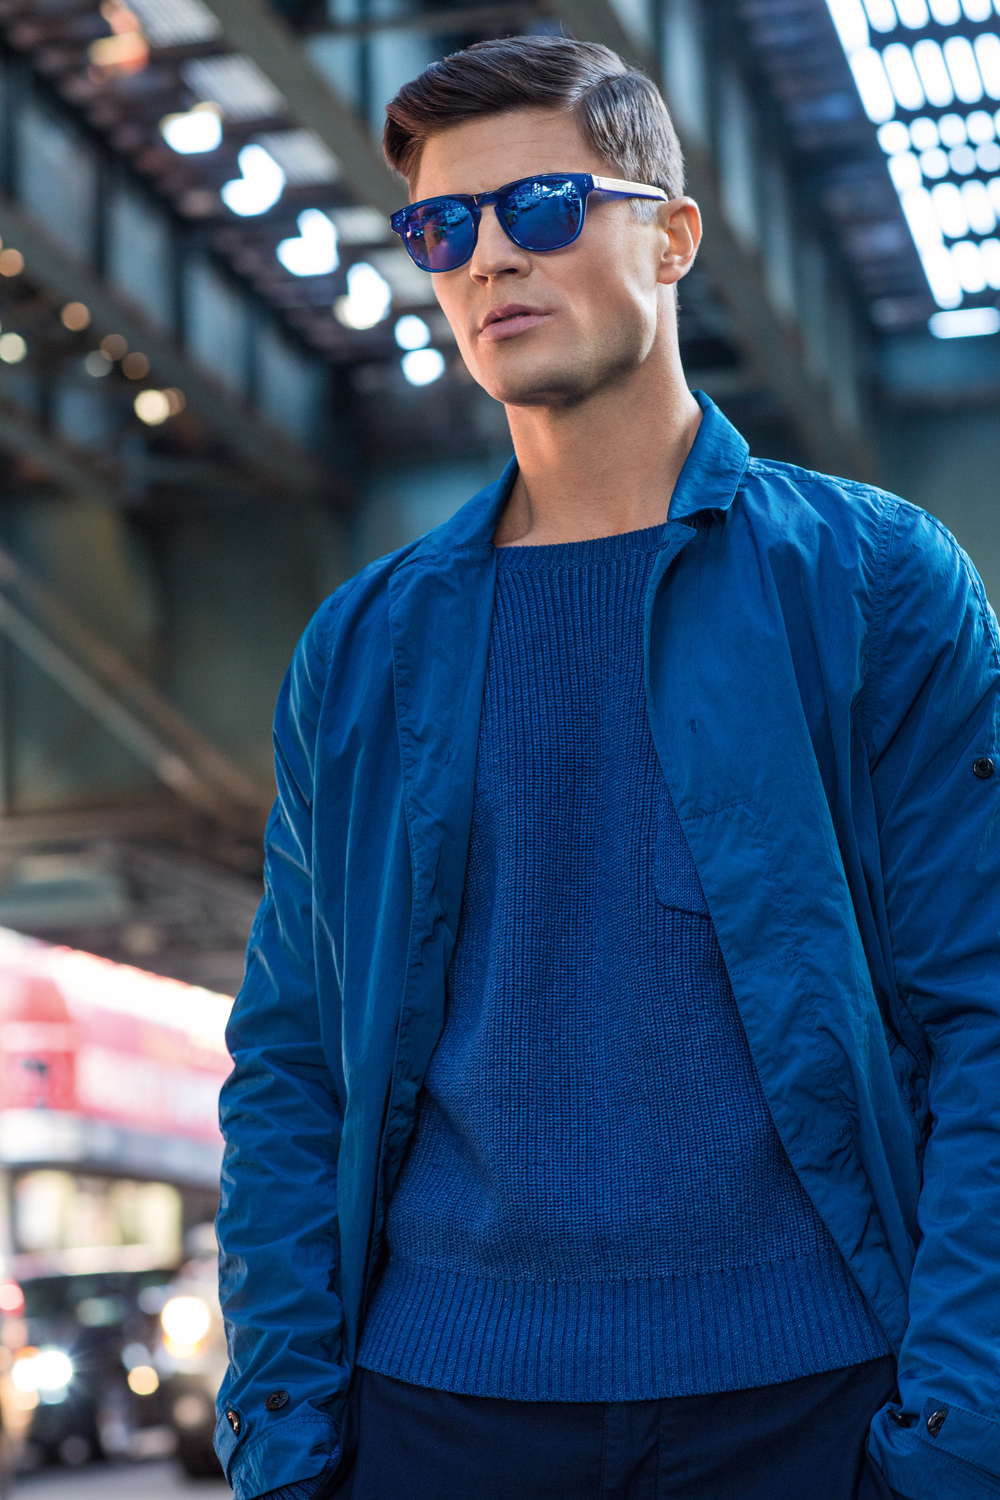 Blake Kuchta   (New York Models)  wears sunglasses by Ross & Brown, sweater by Paper Denim & Cloth and jacket and shorts by Stone Island.